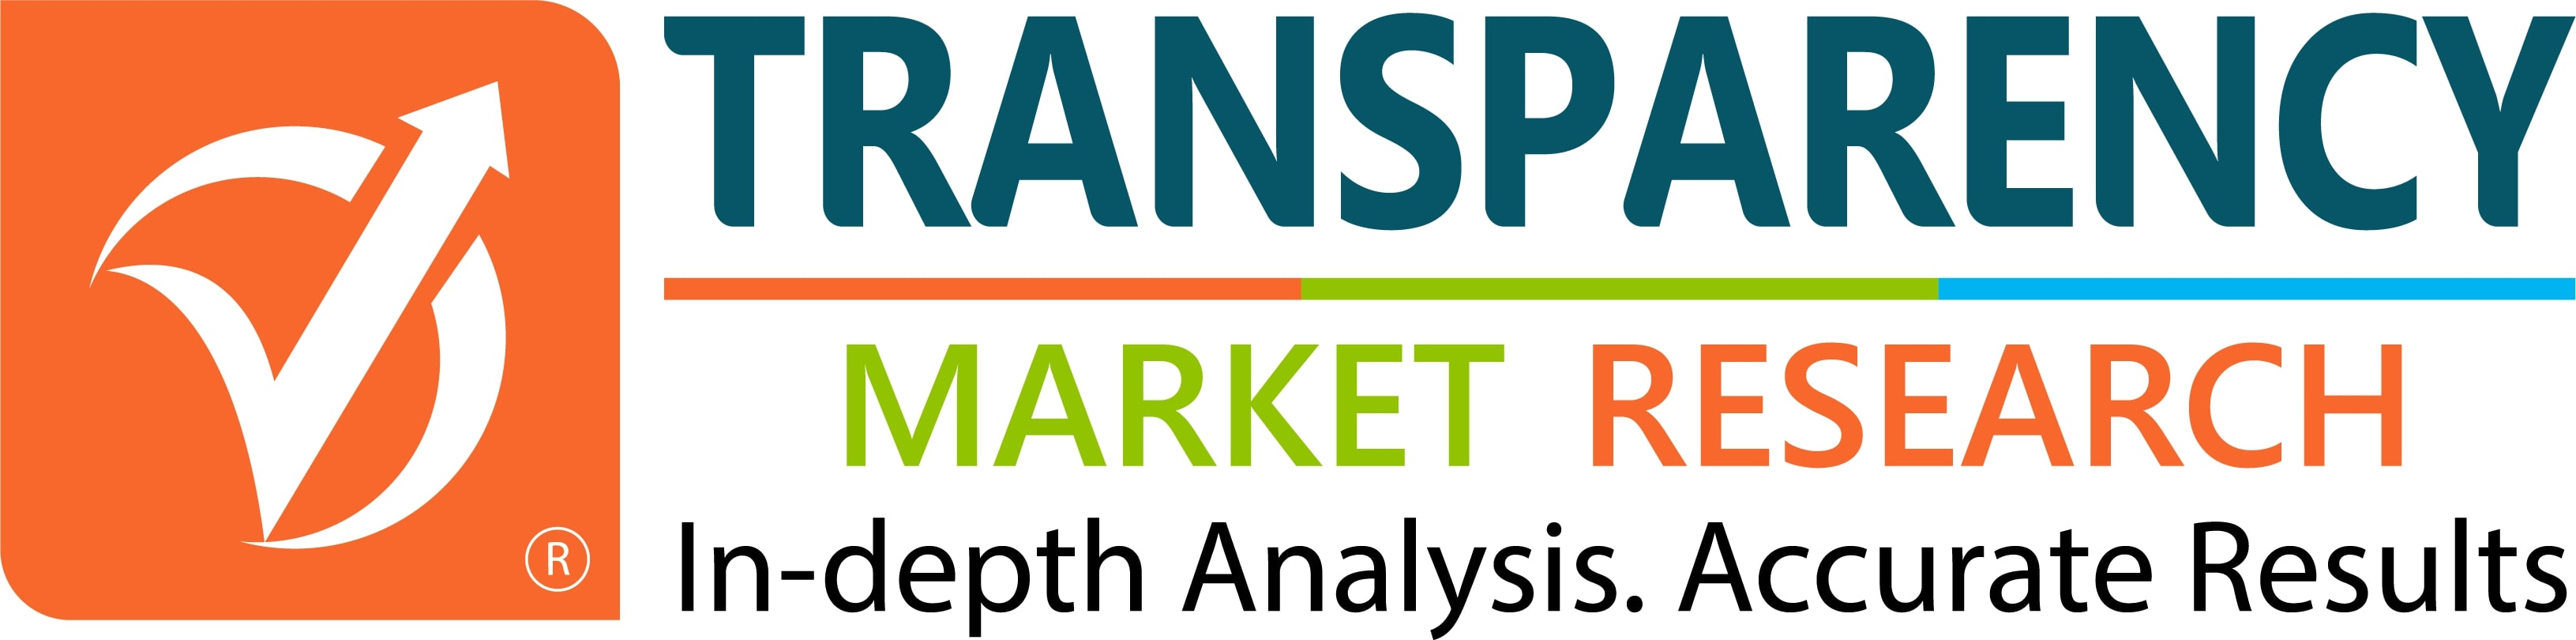 X-ray Detectors Market Size to Gain Traction of US$ 4.6 Billion, Growth Opportunities by 2031